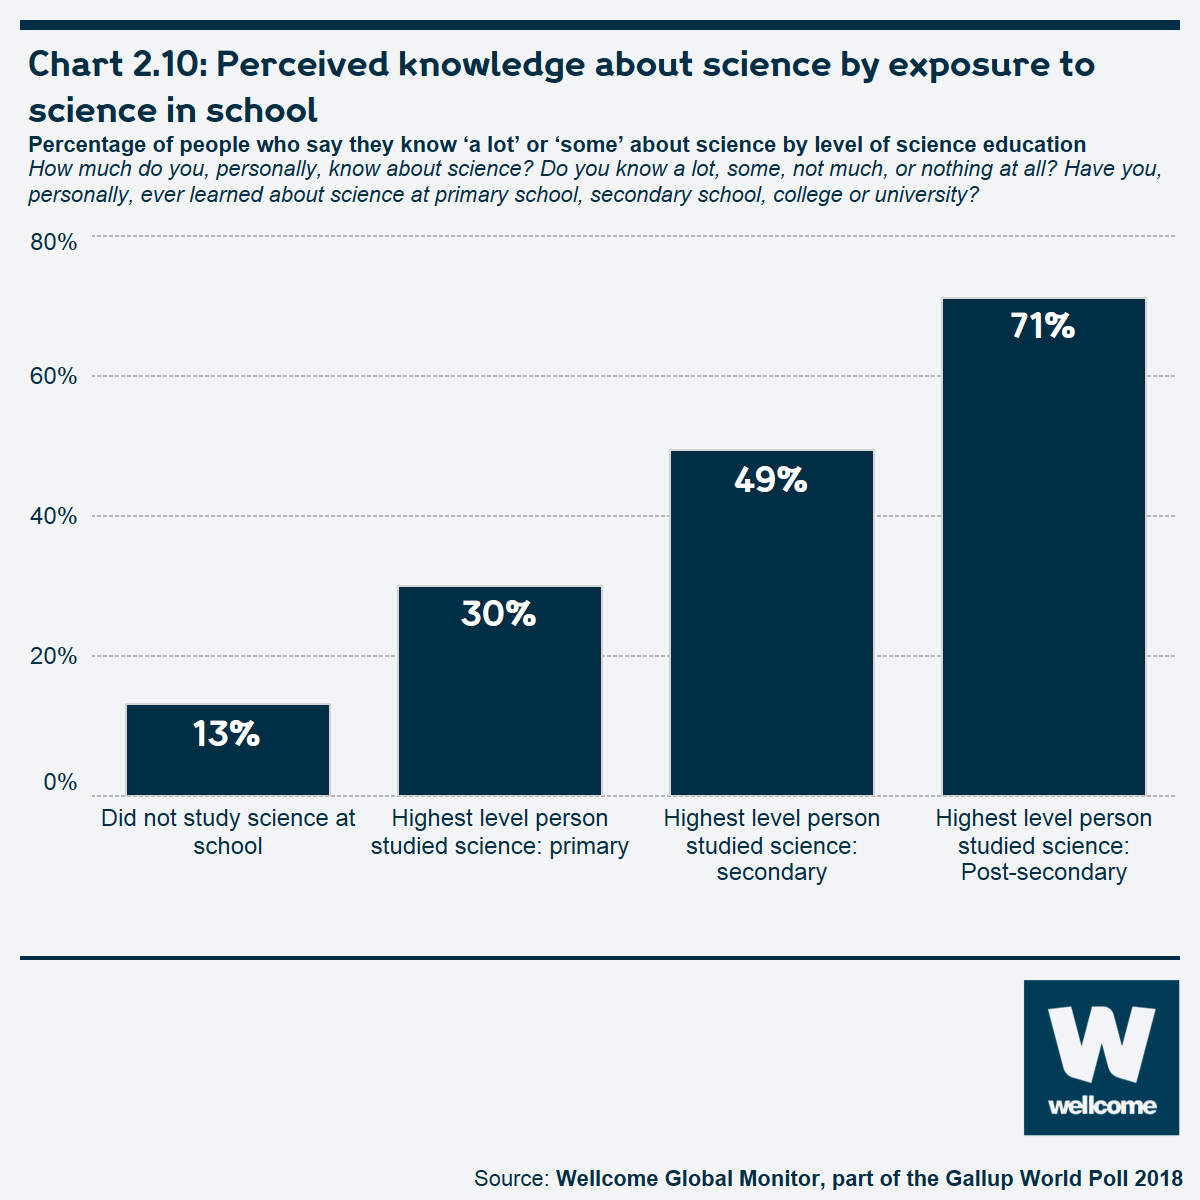 Chart 2.10: Perceived knowledge about science by exposure to science in school